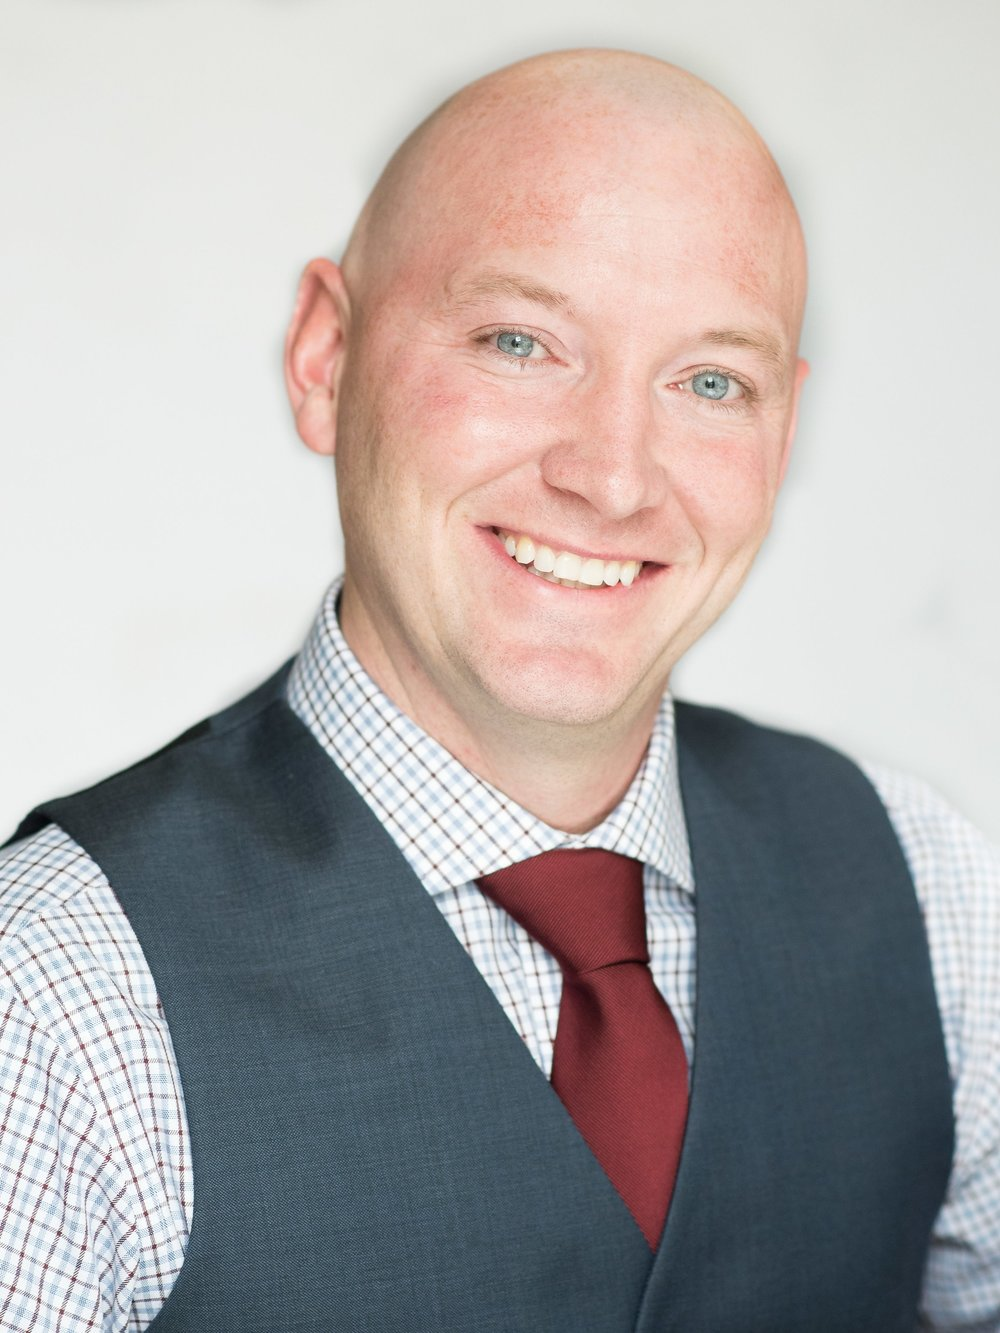 Jared Beuther,CIR,CPC <i>Associate Vice President of Talent Acquisition</i>